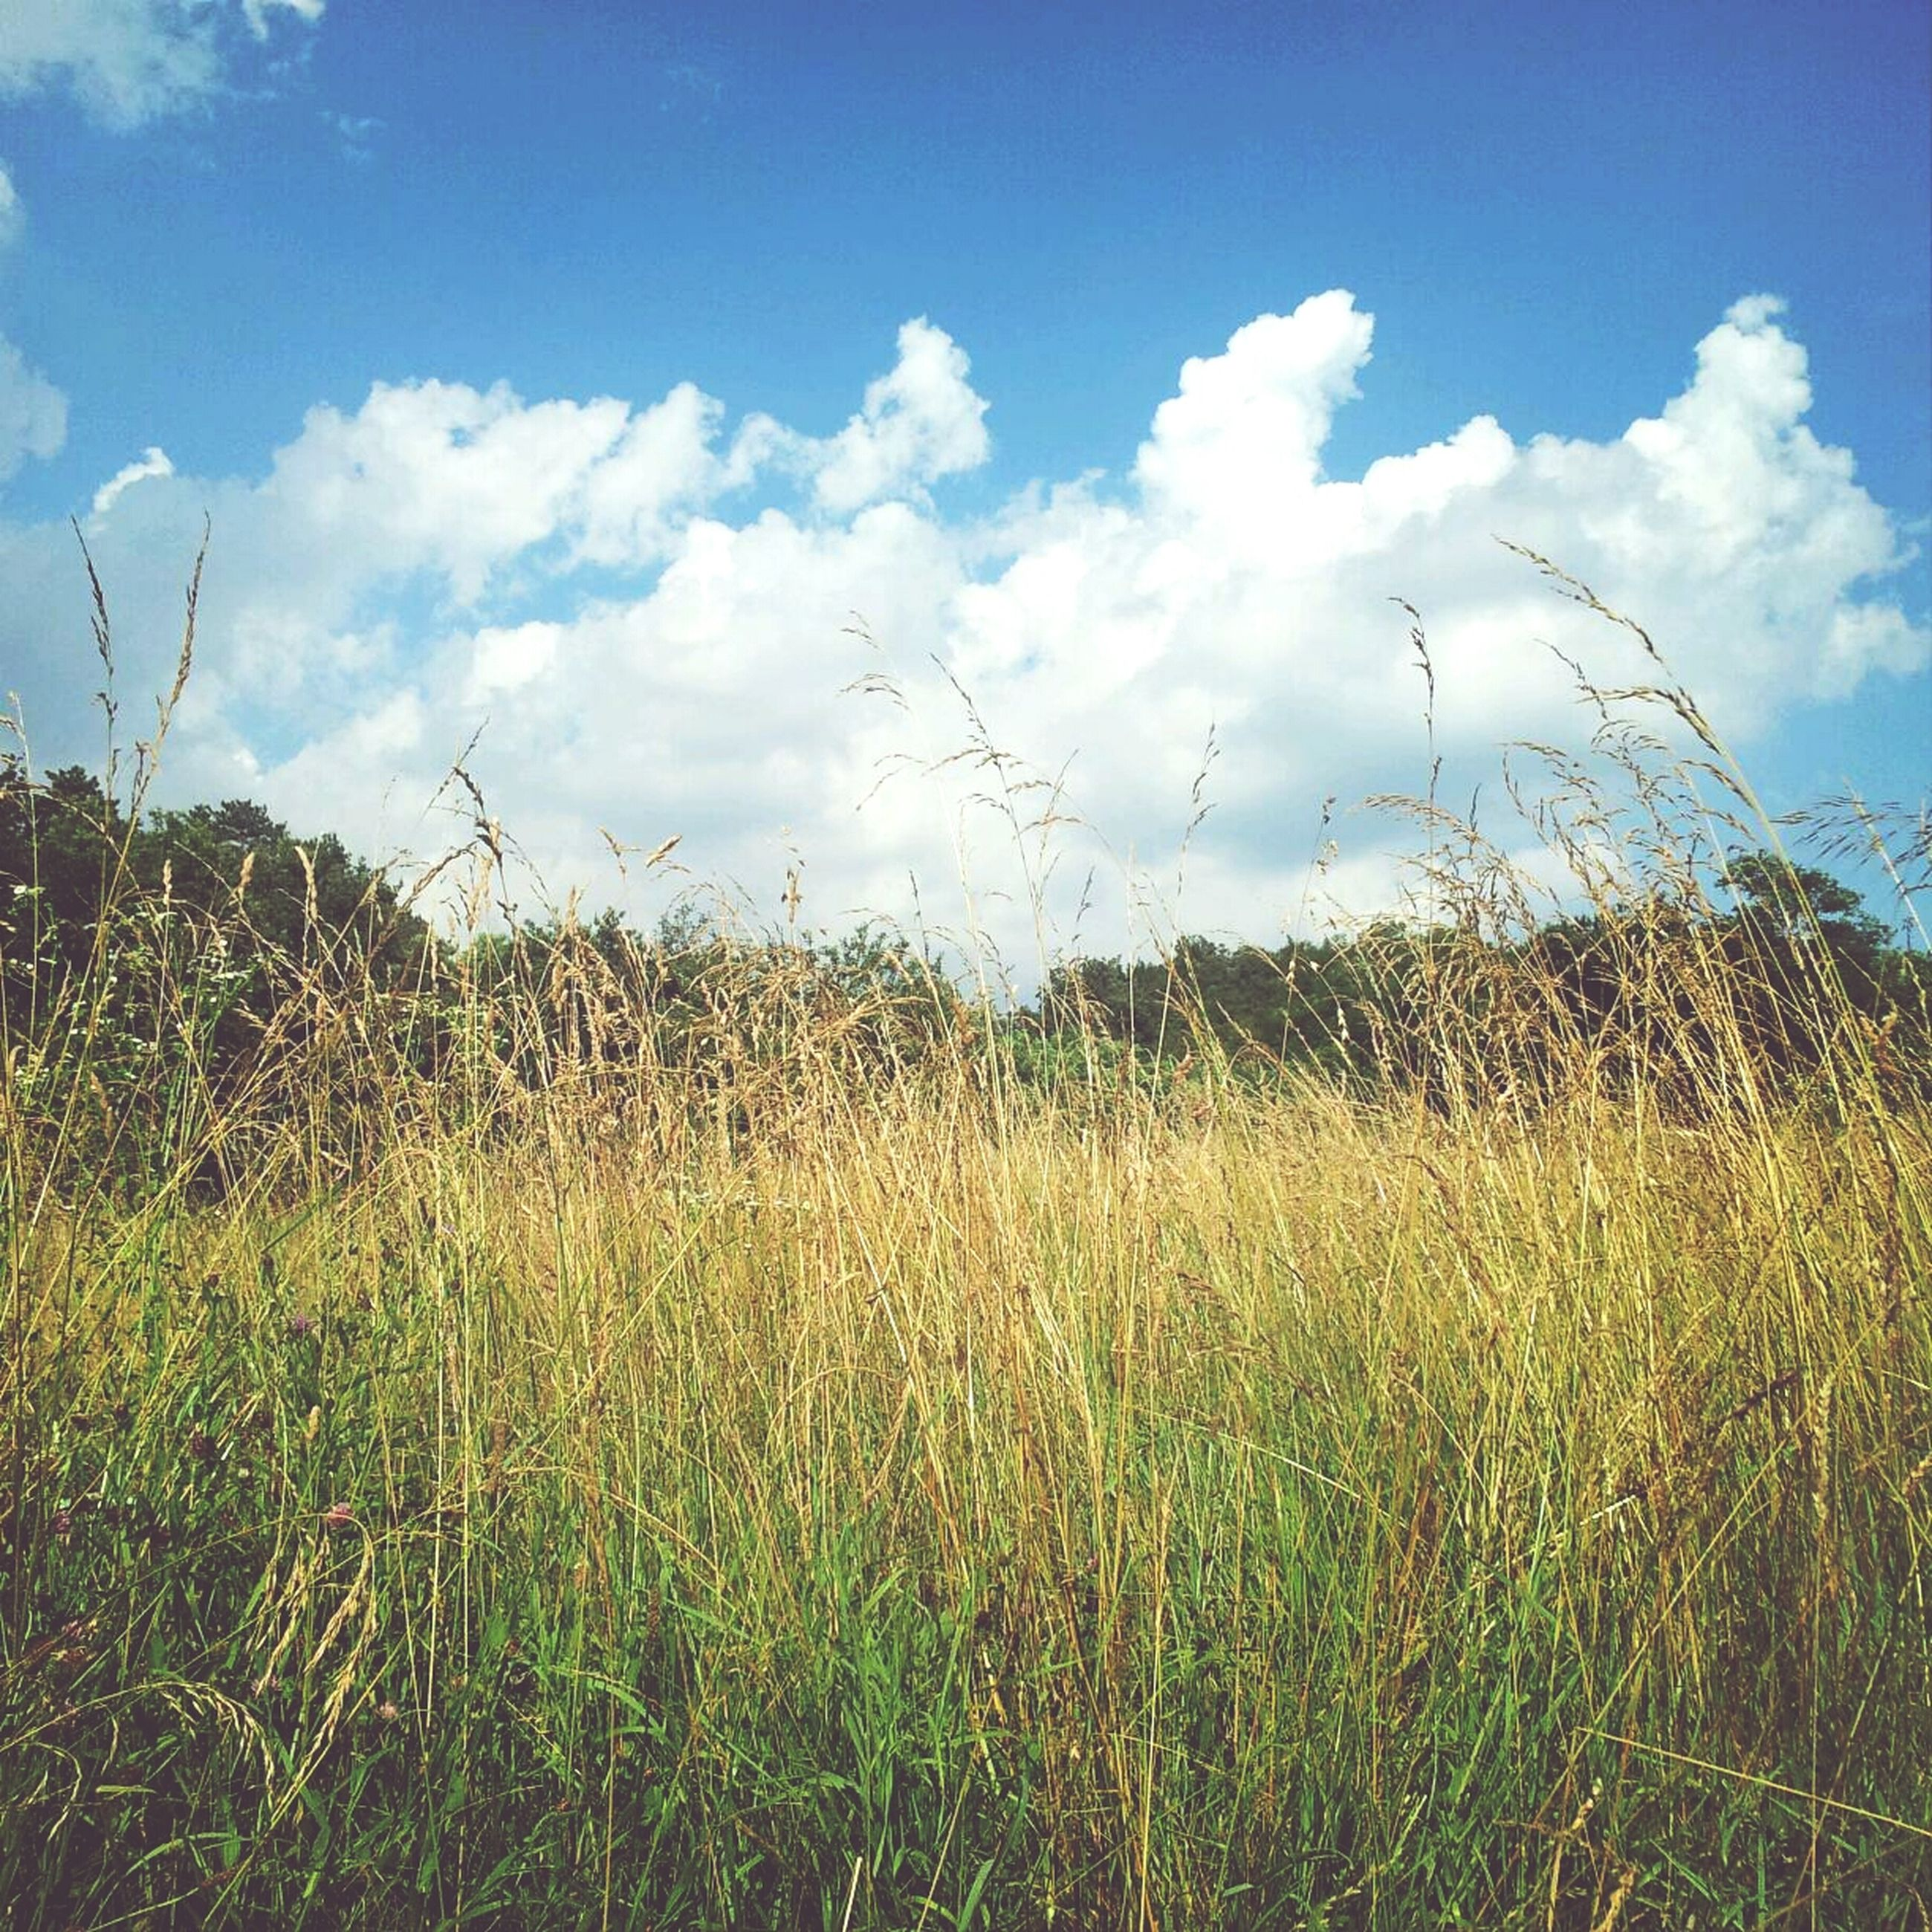 sky, grass, field, growth, tranquility, tranquil scene, cloud - sky, plant, nature, beauty in nature, cloud, landscape, scenics, blue, rural scene, grassy, agriculture, day, cloudy, green color